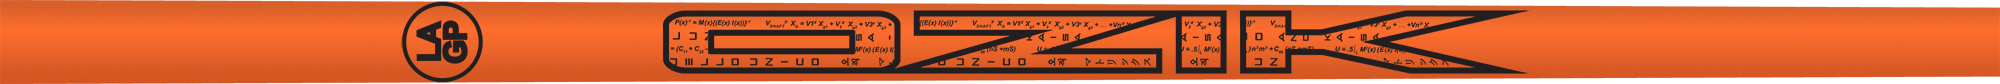 Ozik White Tie: Neon Orange Black Matte - Wood 40 A